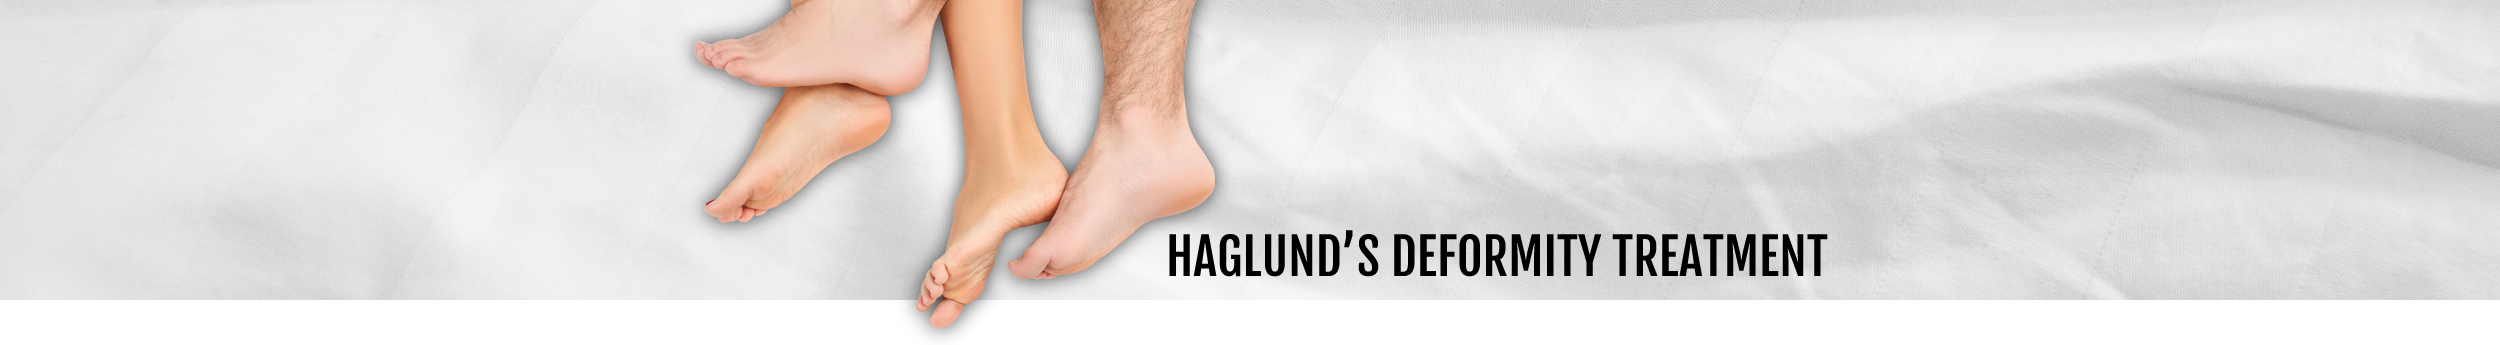 Haglund's Deformity treatment header for the Walk IN Foot clinic in central London